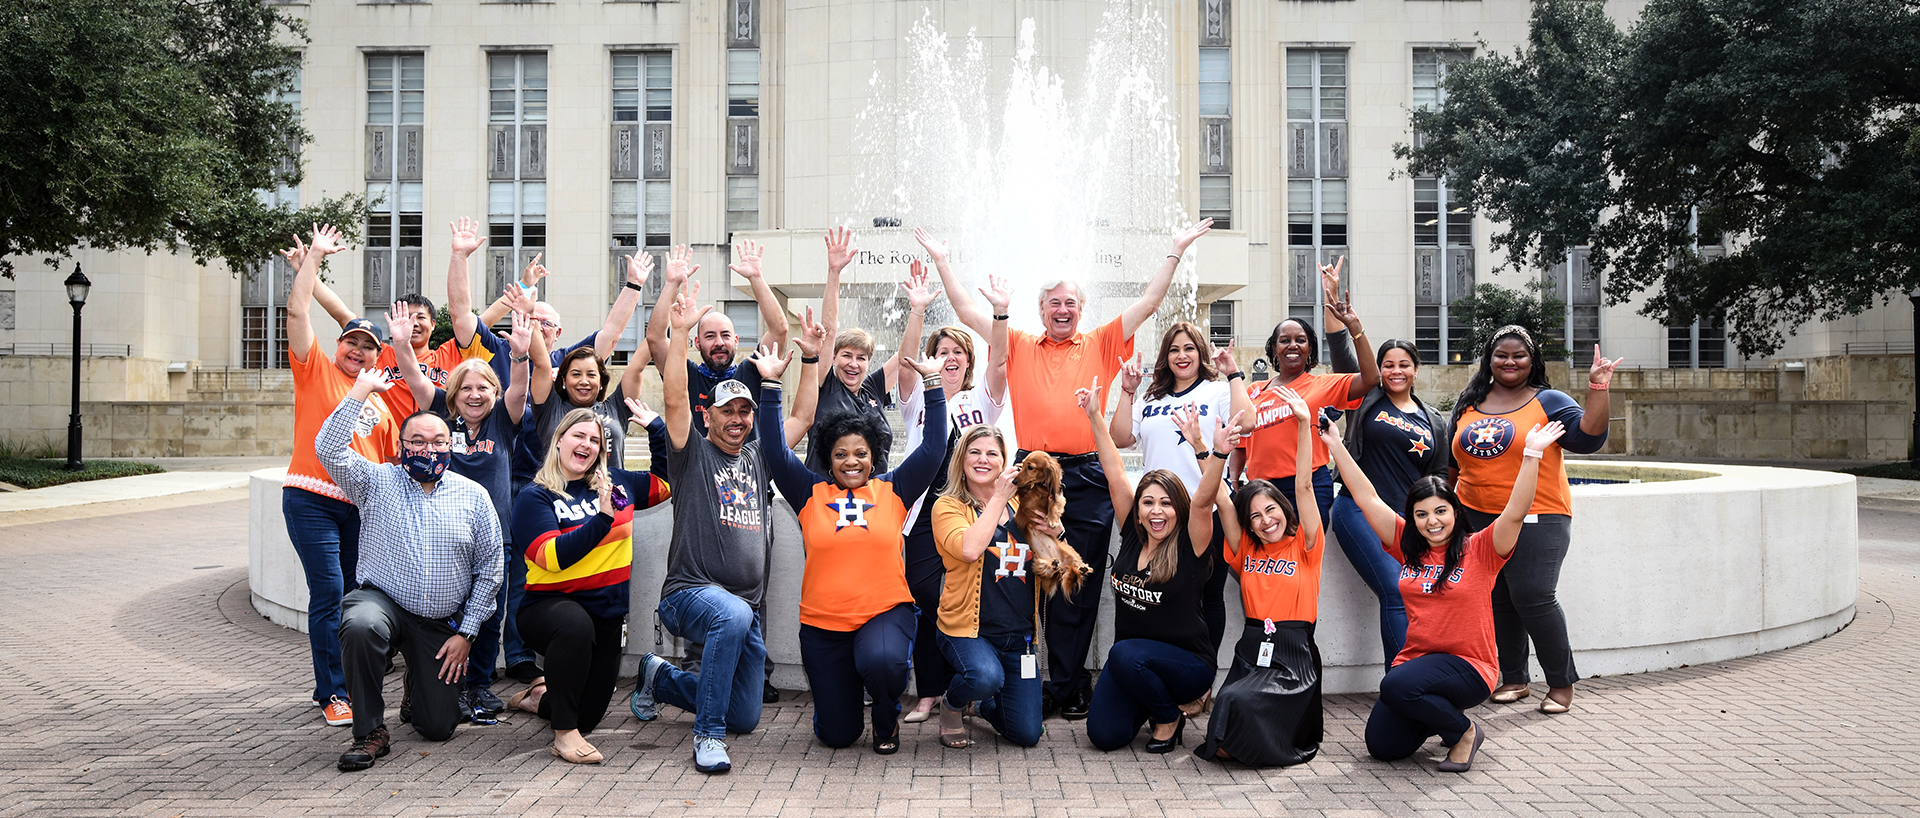 Members of the Baylor community celebrating the Houston Astros outside the Cullen buiding.